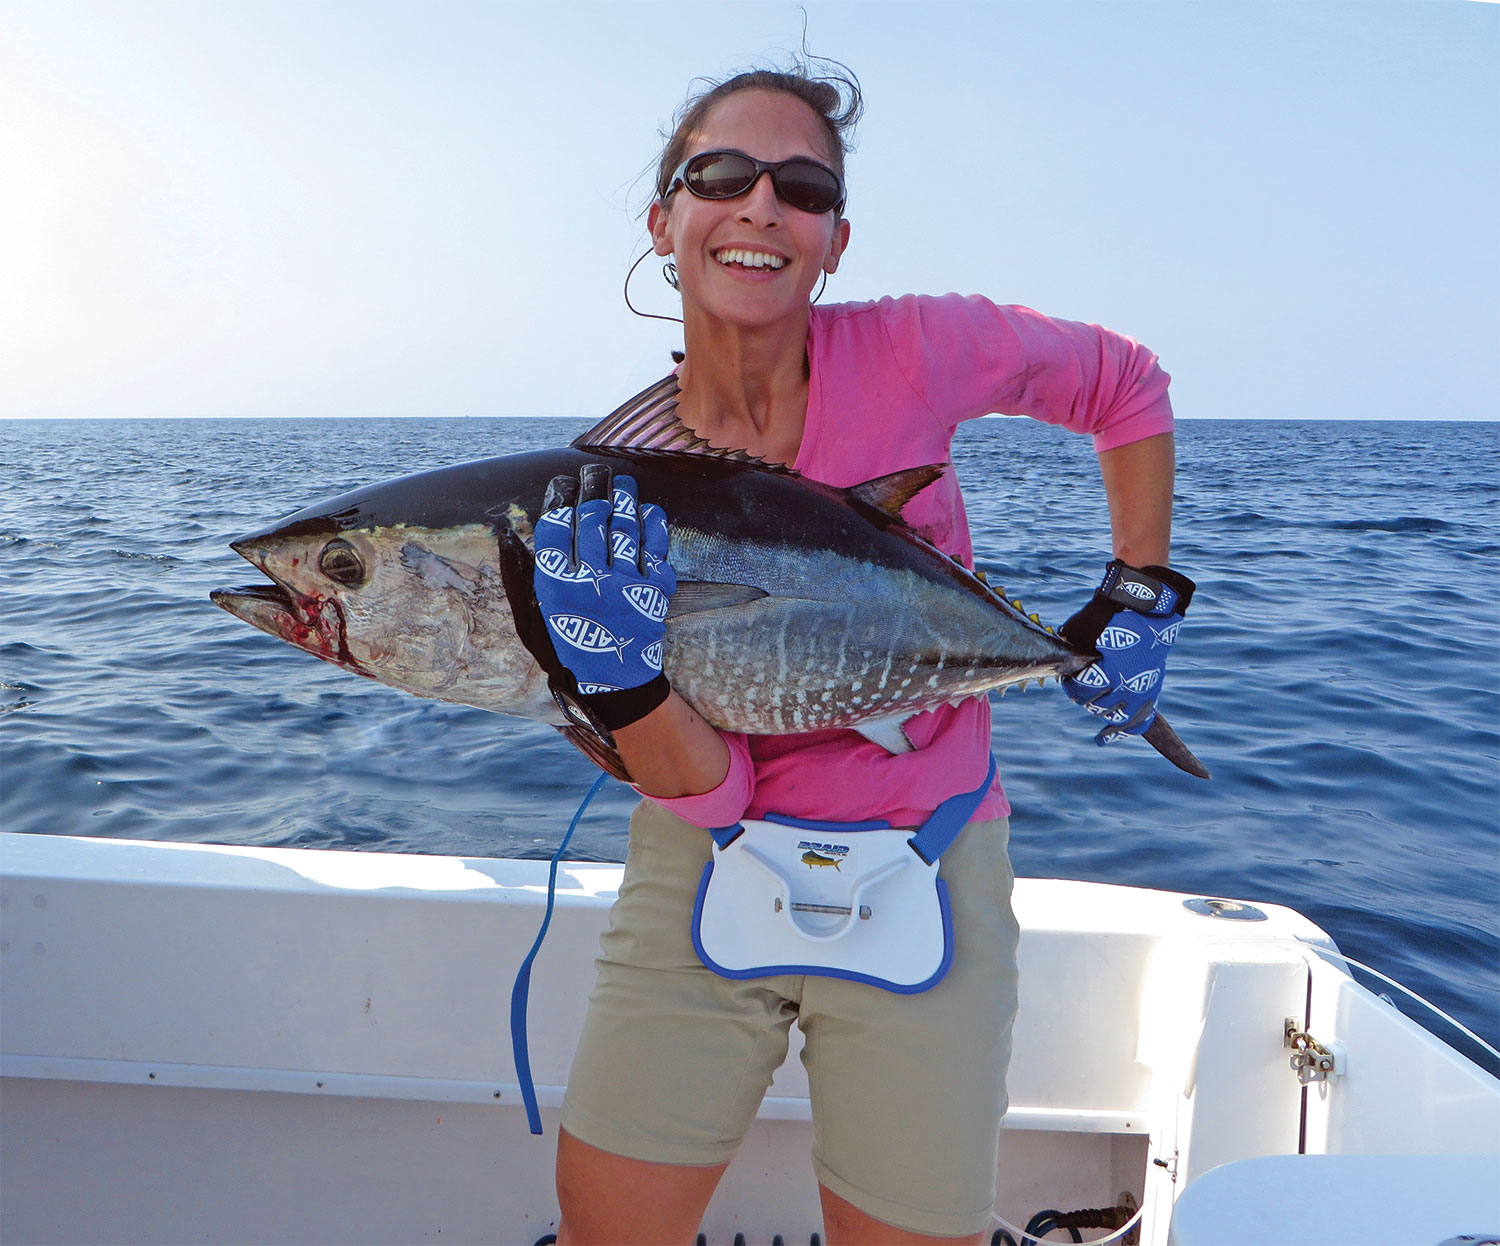 showing off a huge tuna with a huge smile and a pink shirt